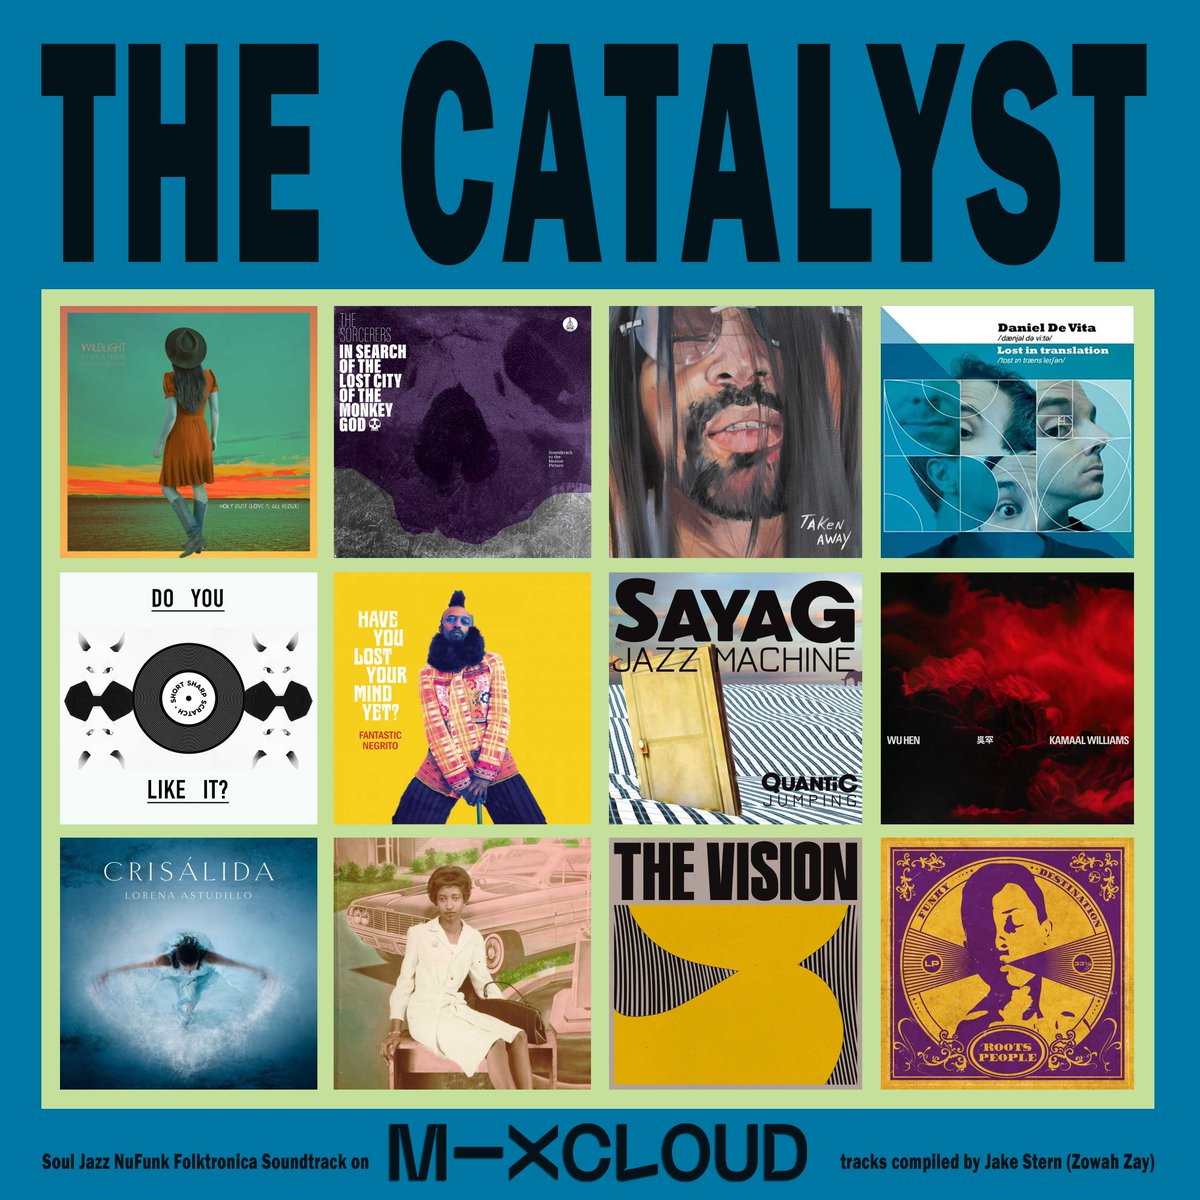 THE CATALYST #nowplaying on #Mixcloud https://t.co/gR5rWET2Eg  #NuFunk #Soul #Jazz #Disco #Funky #Soundtrack #RnB #experimental #breakbeat #downtempo #folktronica #funk #indiegroove https://t.co/UifWsoMiLi